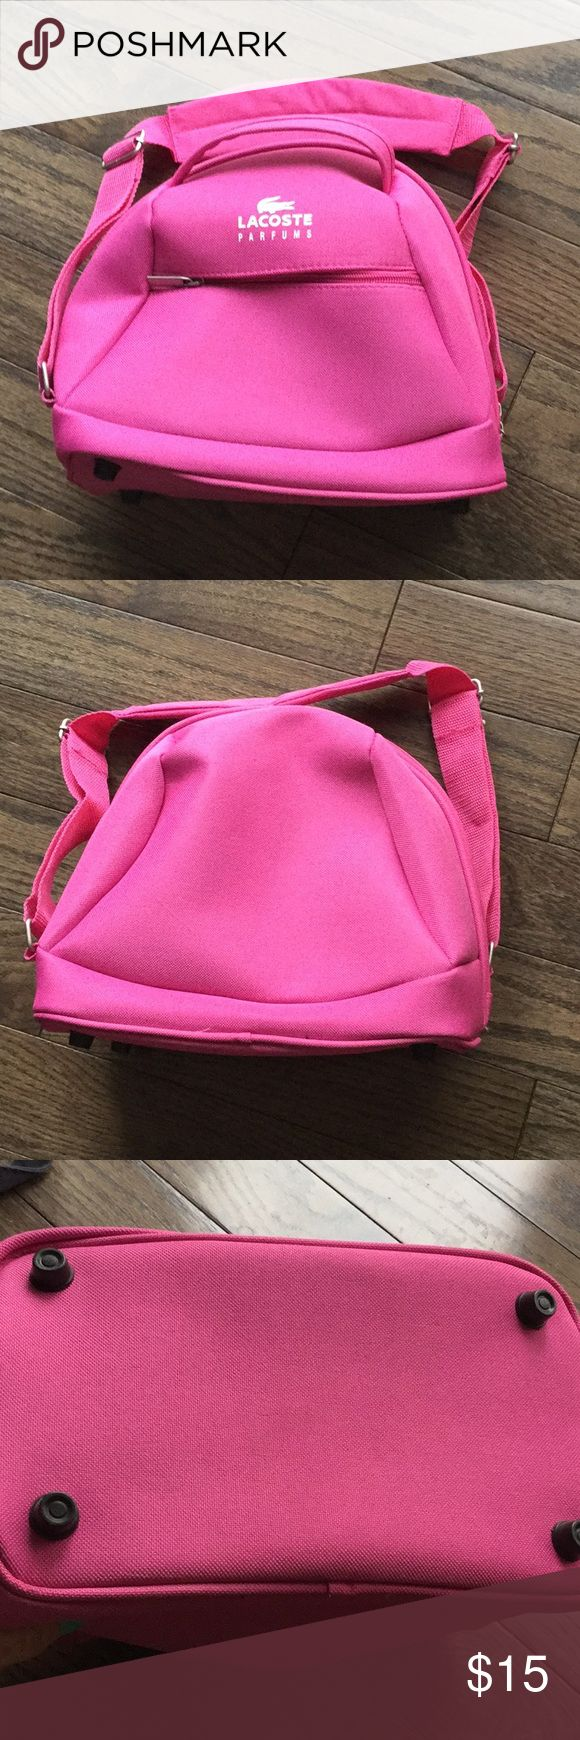 ☘️☘️ Travel tote bag Lacoste pink travel tote bag with adjustable carrying strap. Has 2 elastic pockets on the inside. Never been used! If there was a tag it would still be on. Lacoste Bags Travel Bags